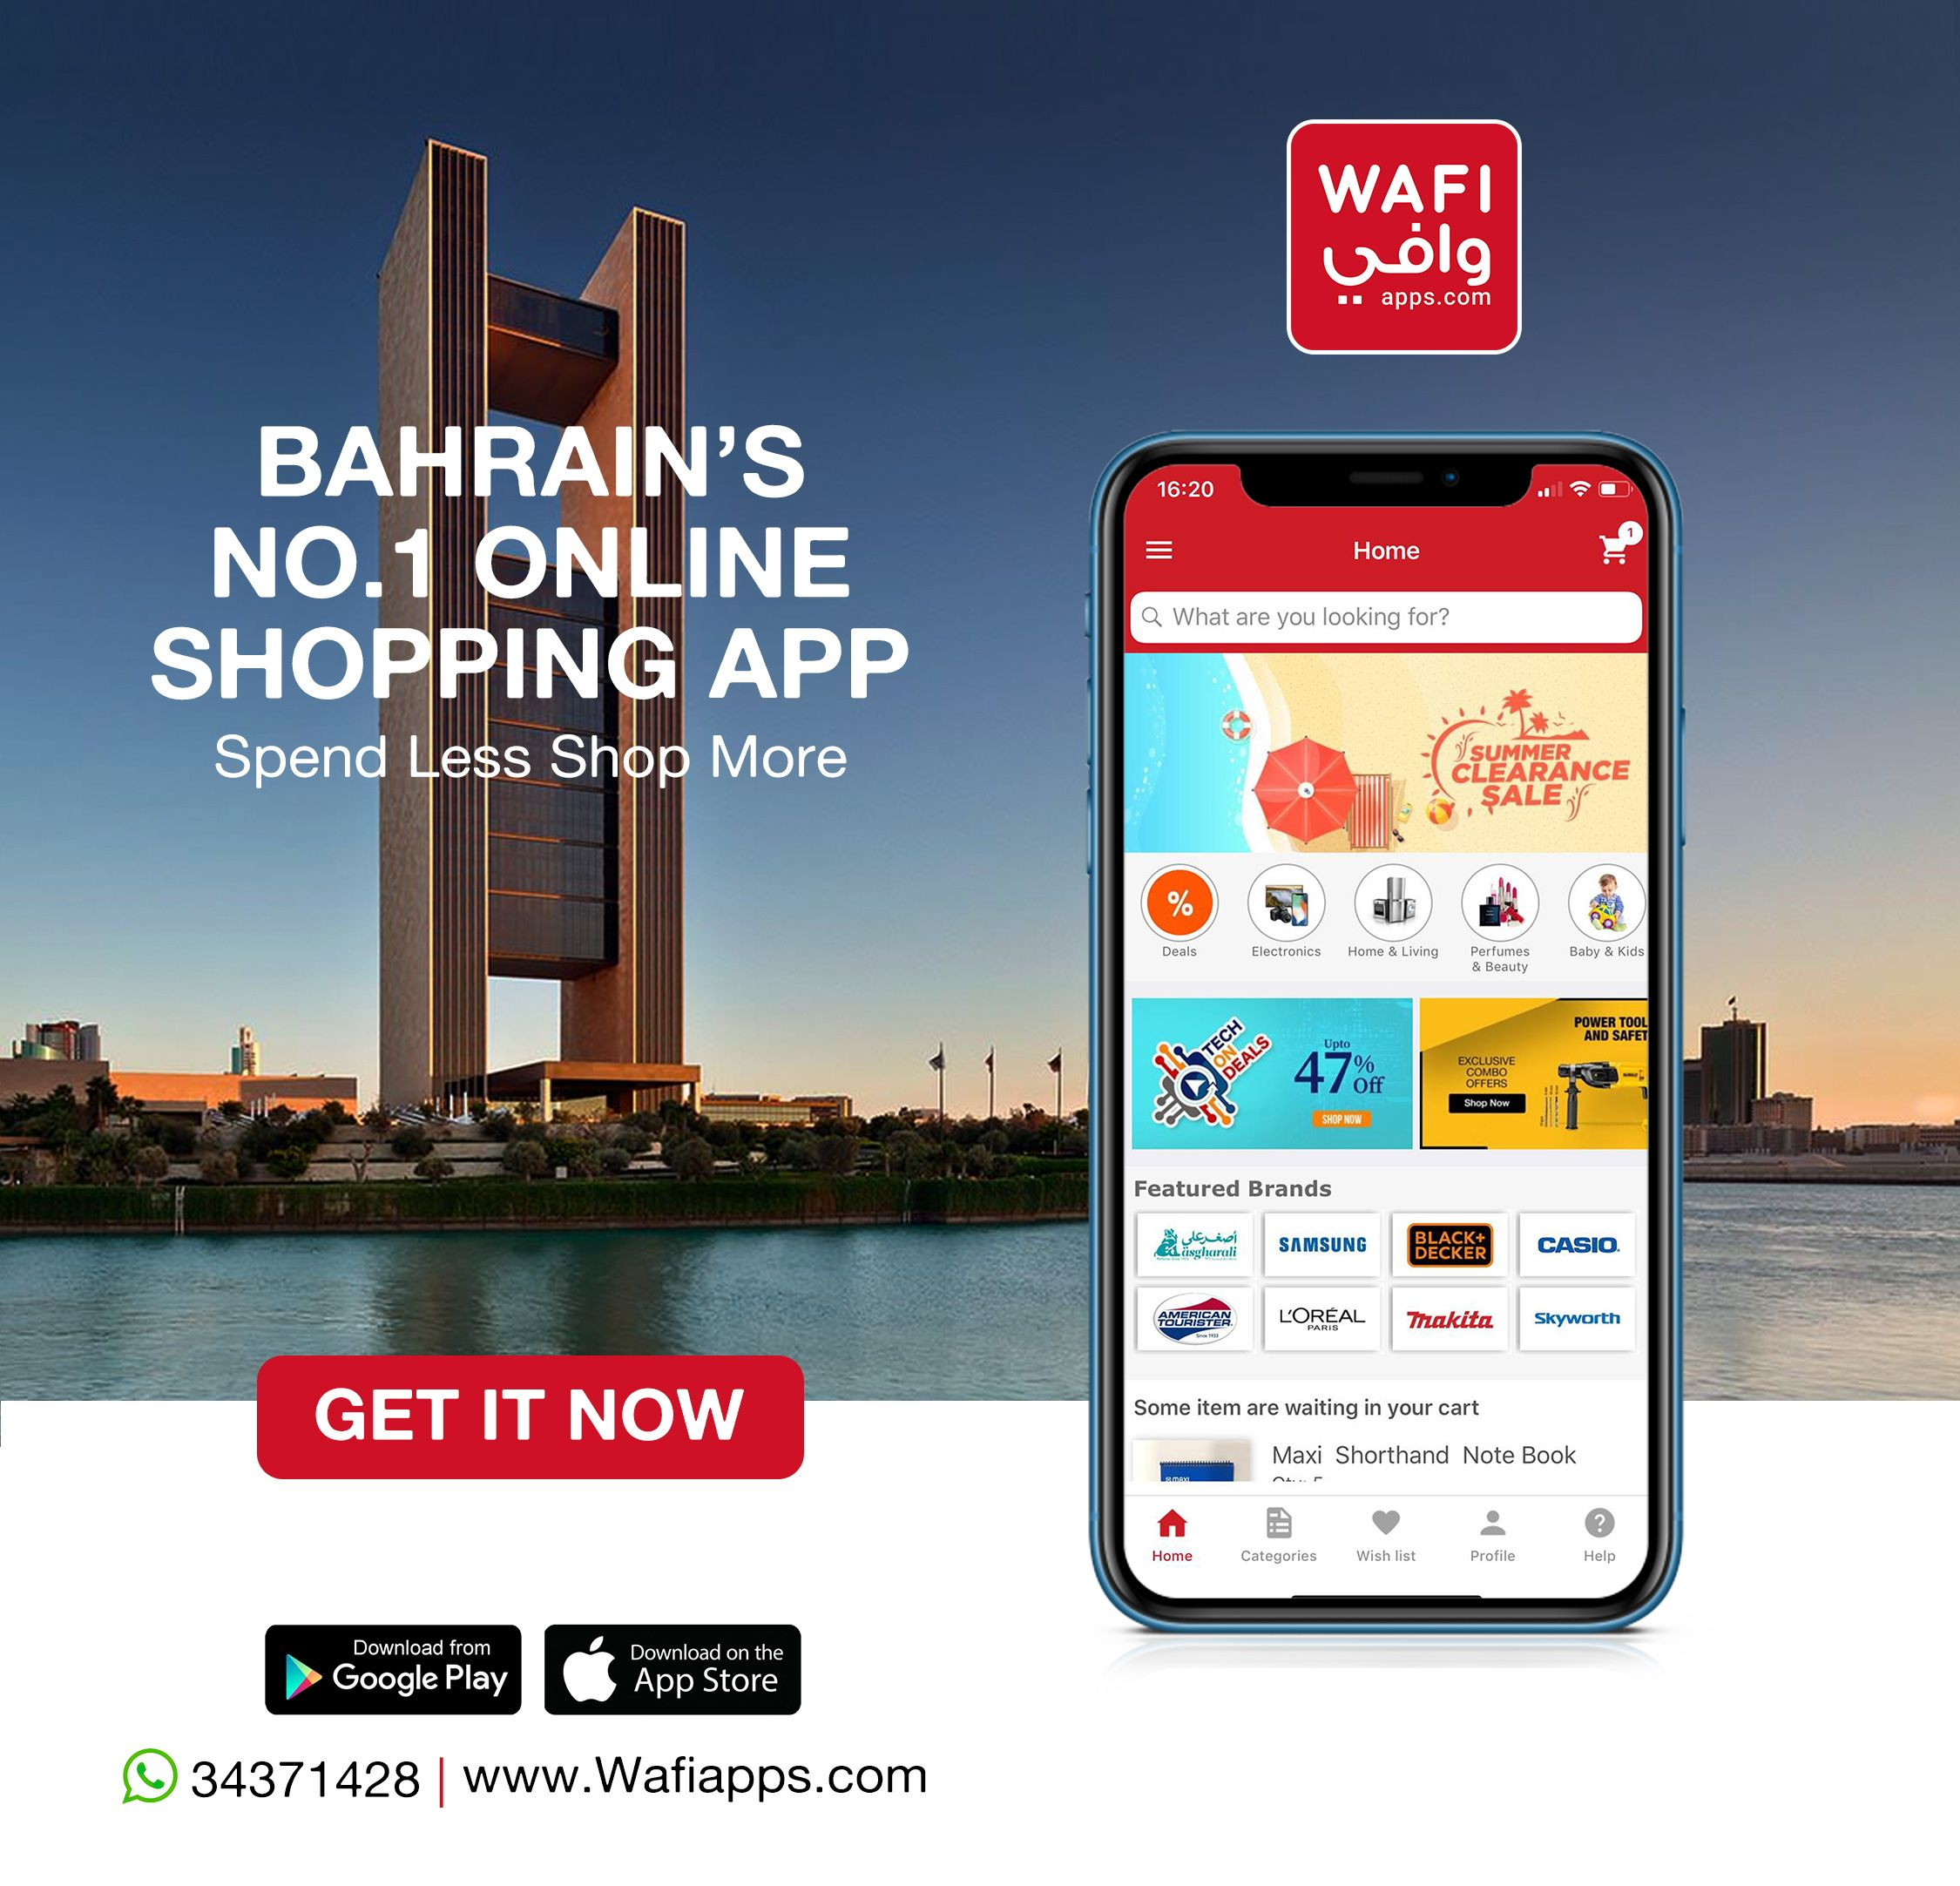 Be a part of Bahrain's Largest Online Shopping App! One